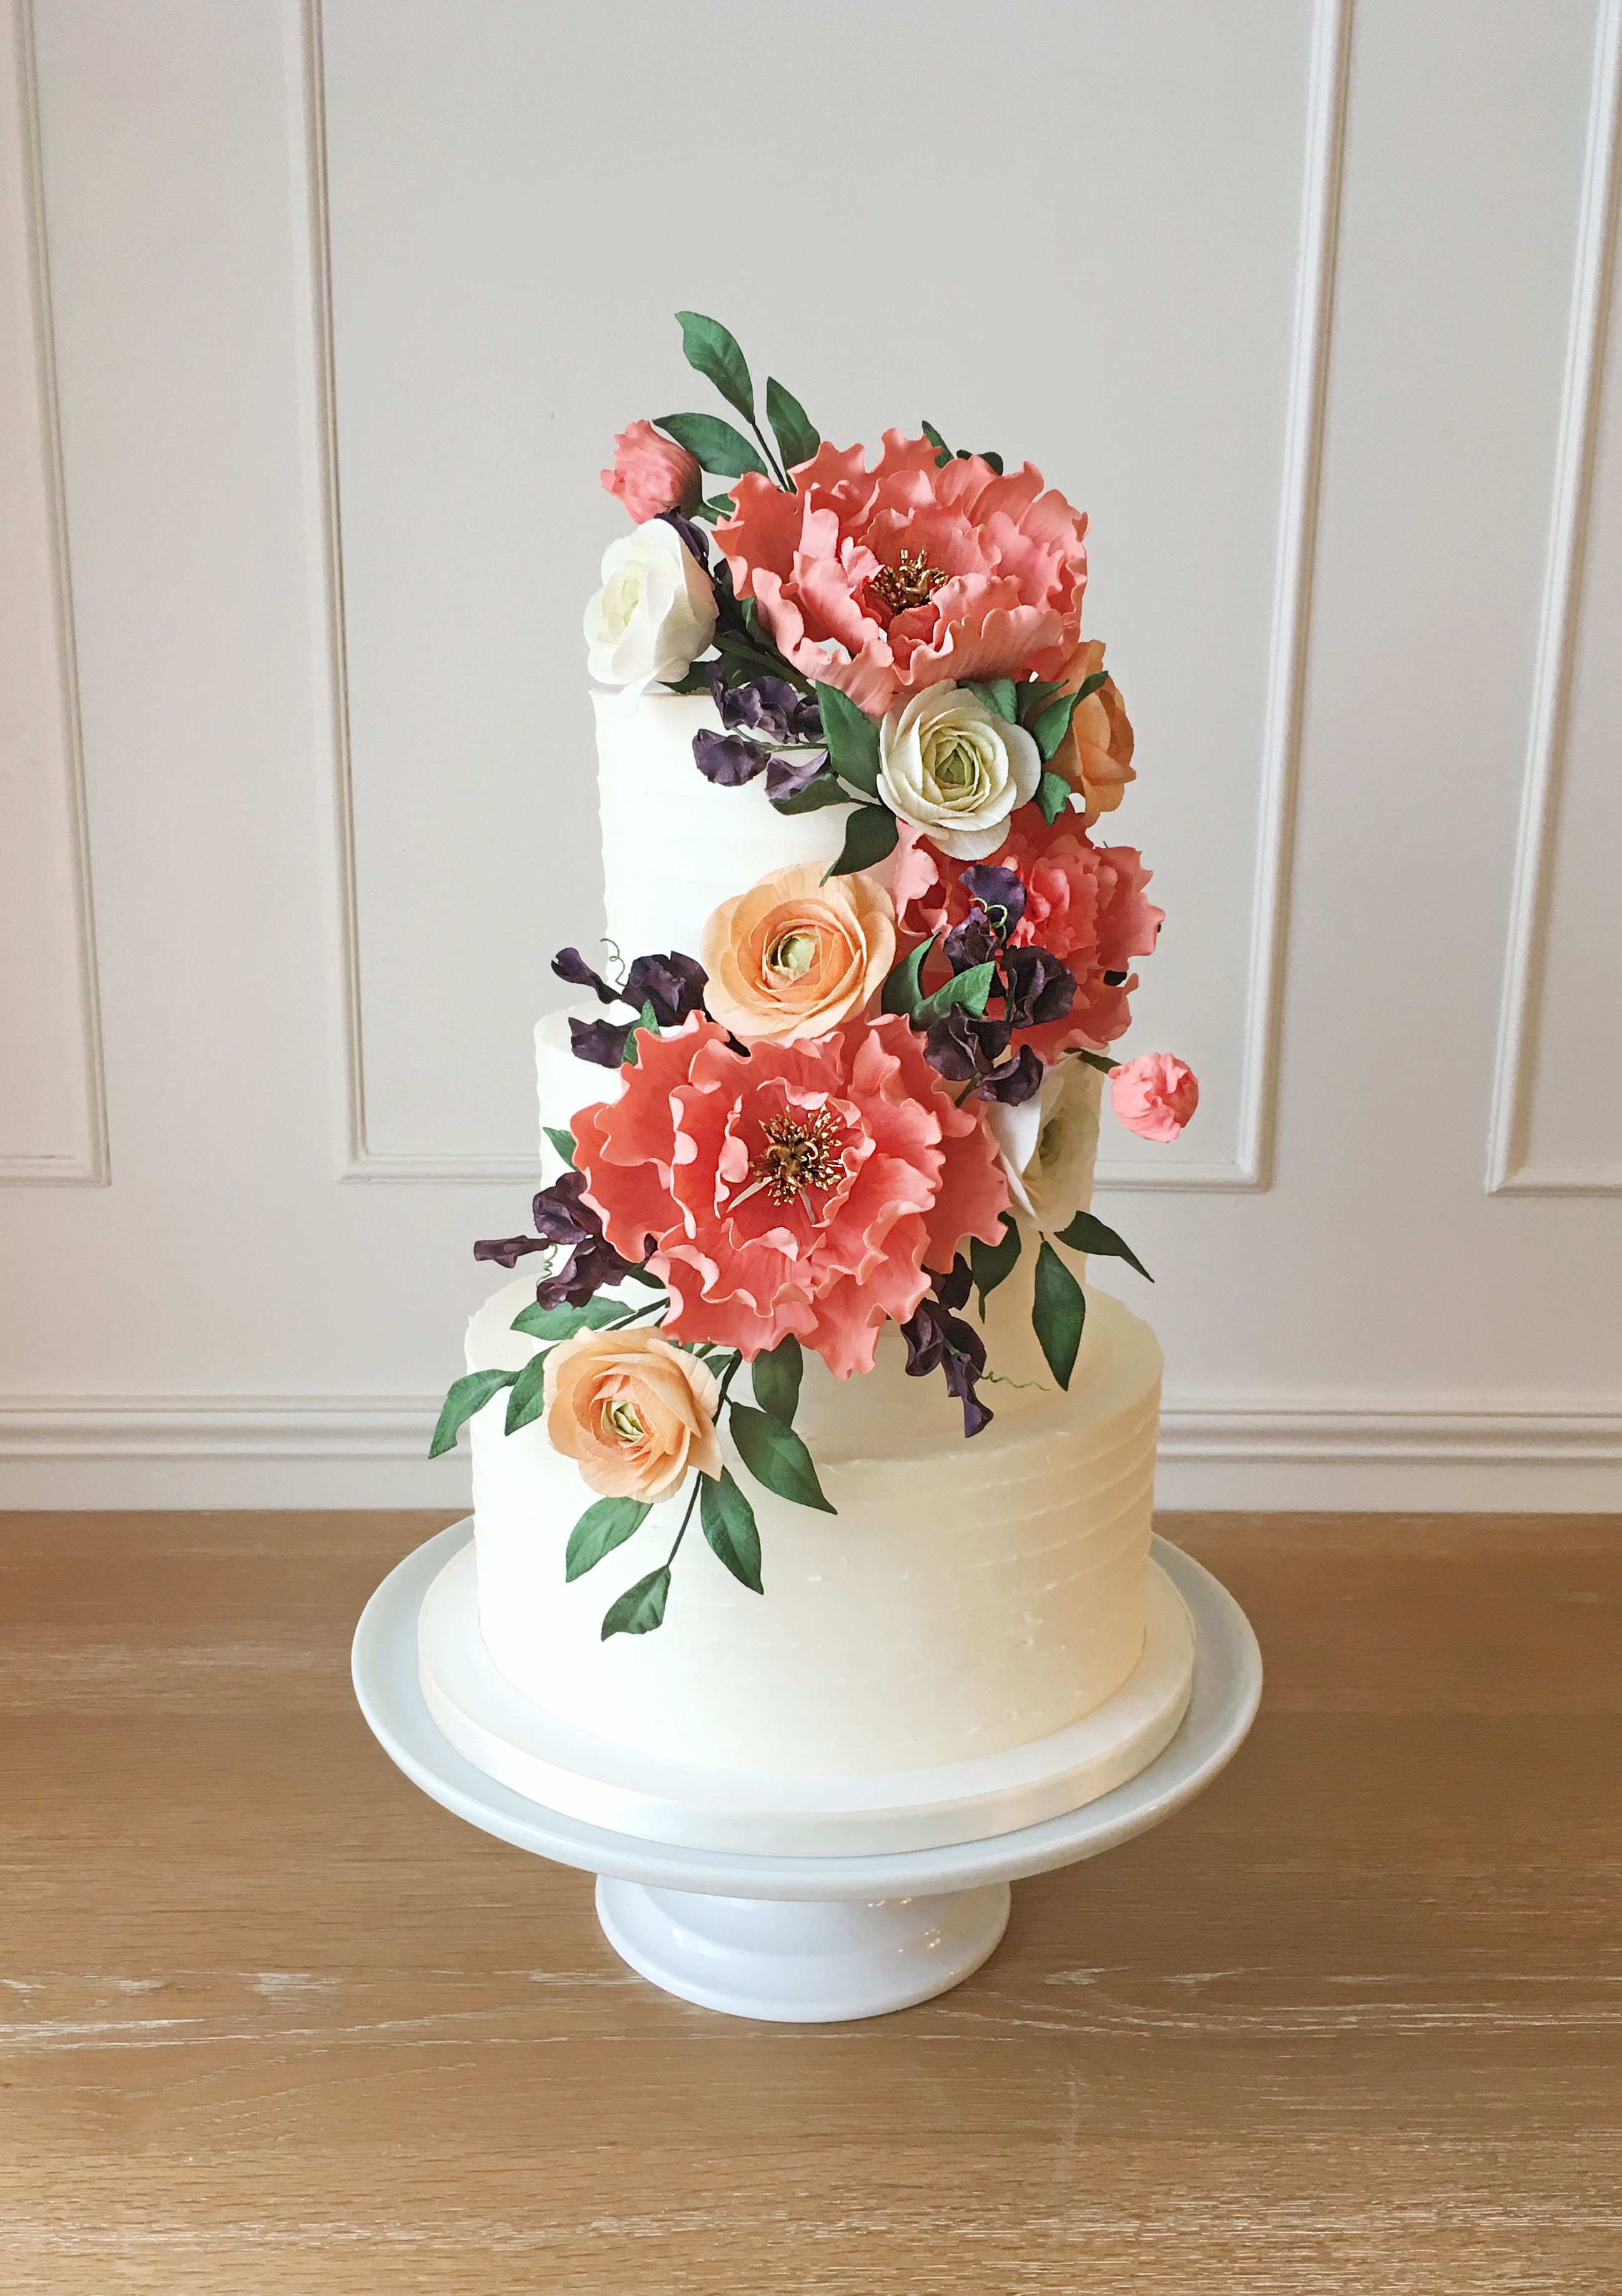 Fall Wedding Cakes.22 Decadent Fall Wedding Cakes Gorgeous Fall Wedding Cake Ideas